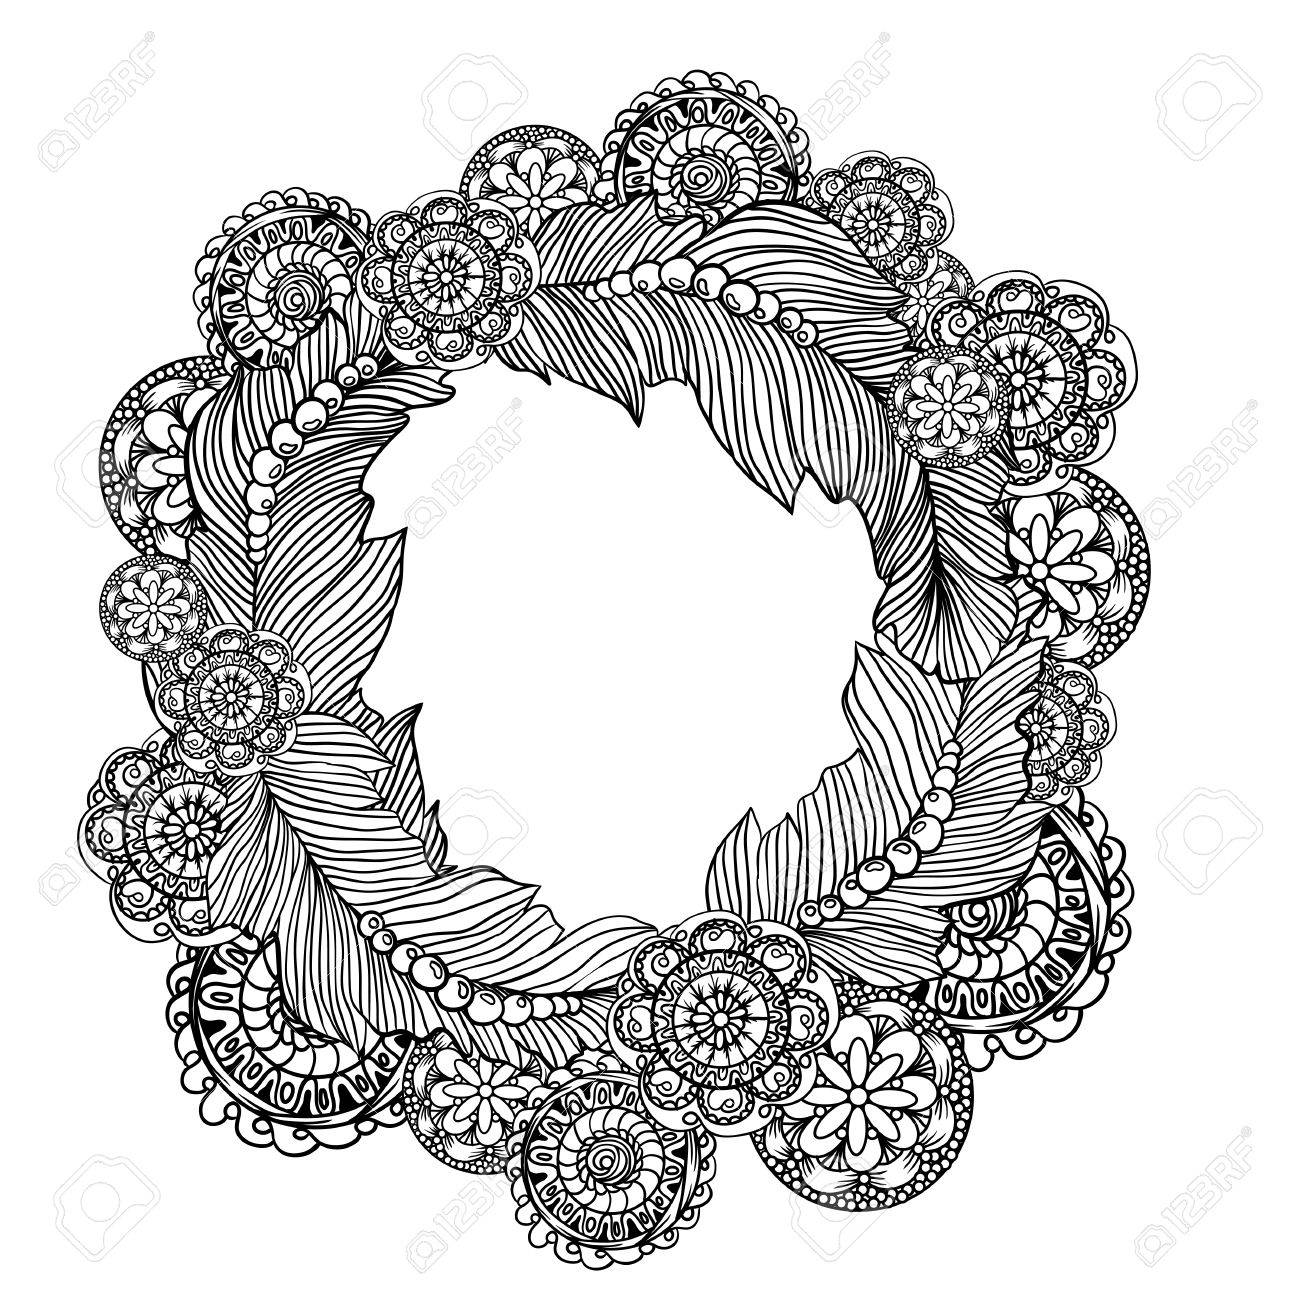 hand drawn circle frame for photo with ste unk technology elements  hand drawn circle frame for photo with ste unk technology elements doodle style design stock vector